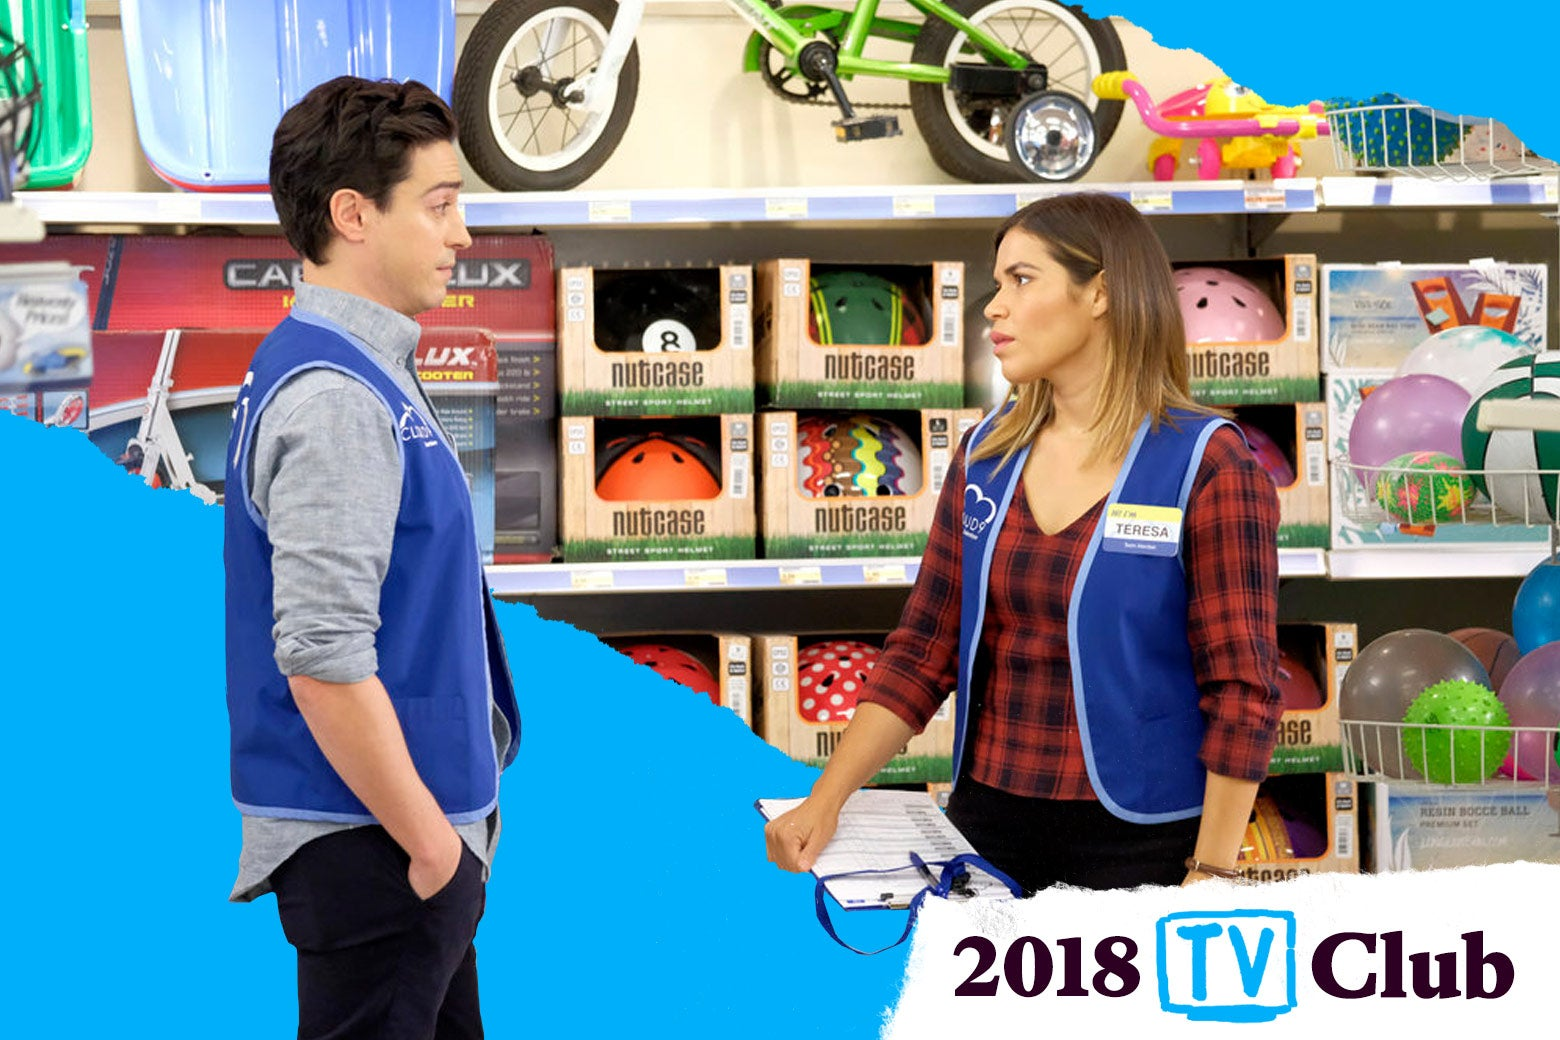 A still from Superstore.